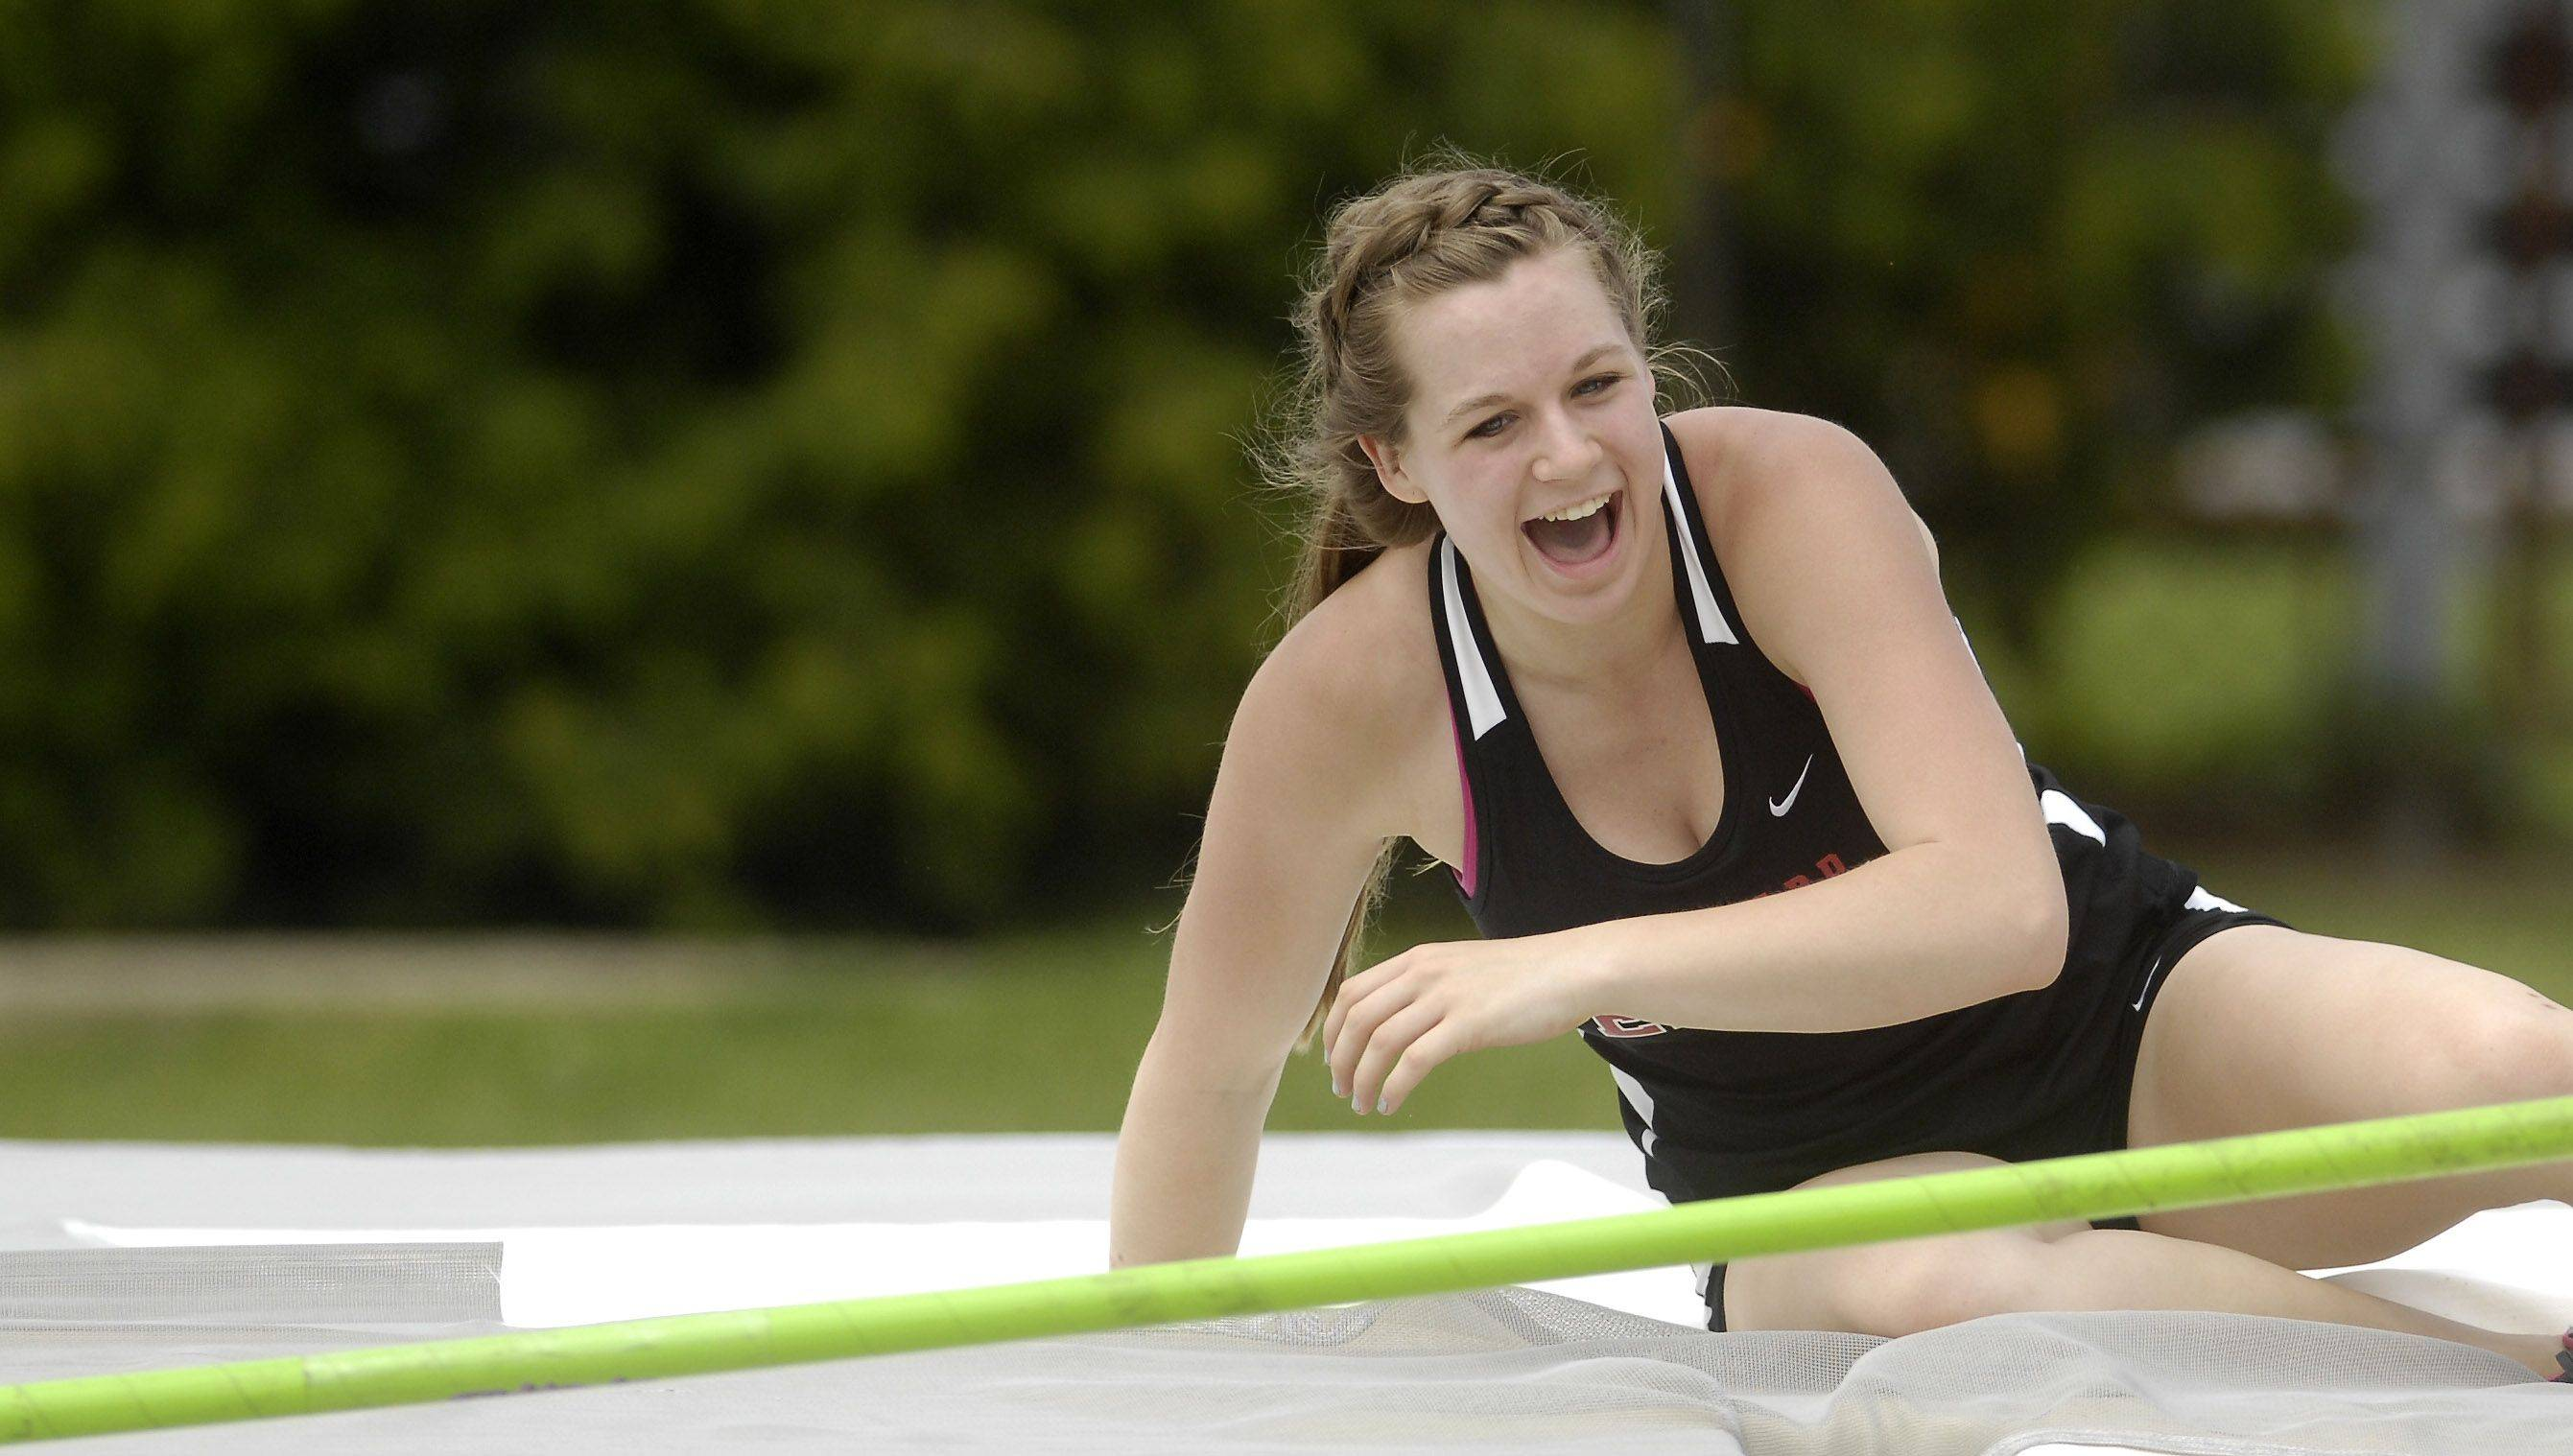 Glenbard East's Kelsey Kovach smiles after clearing the bar in the pole vault during Friday's preliminaries.